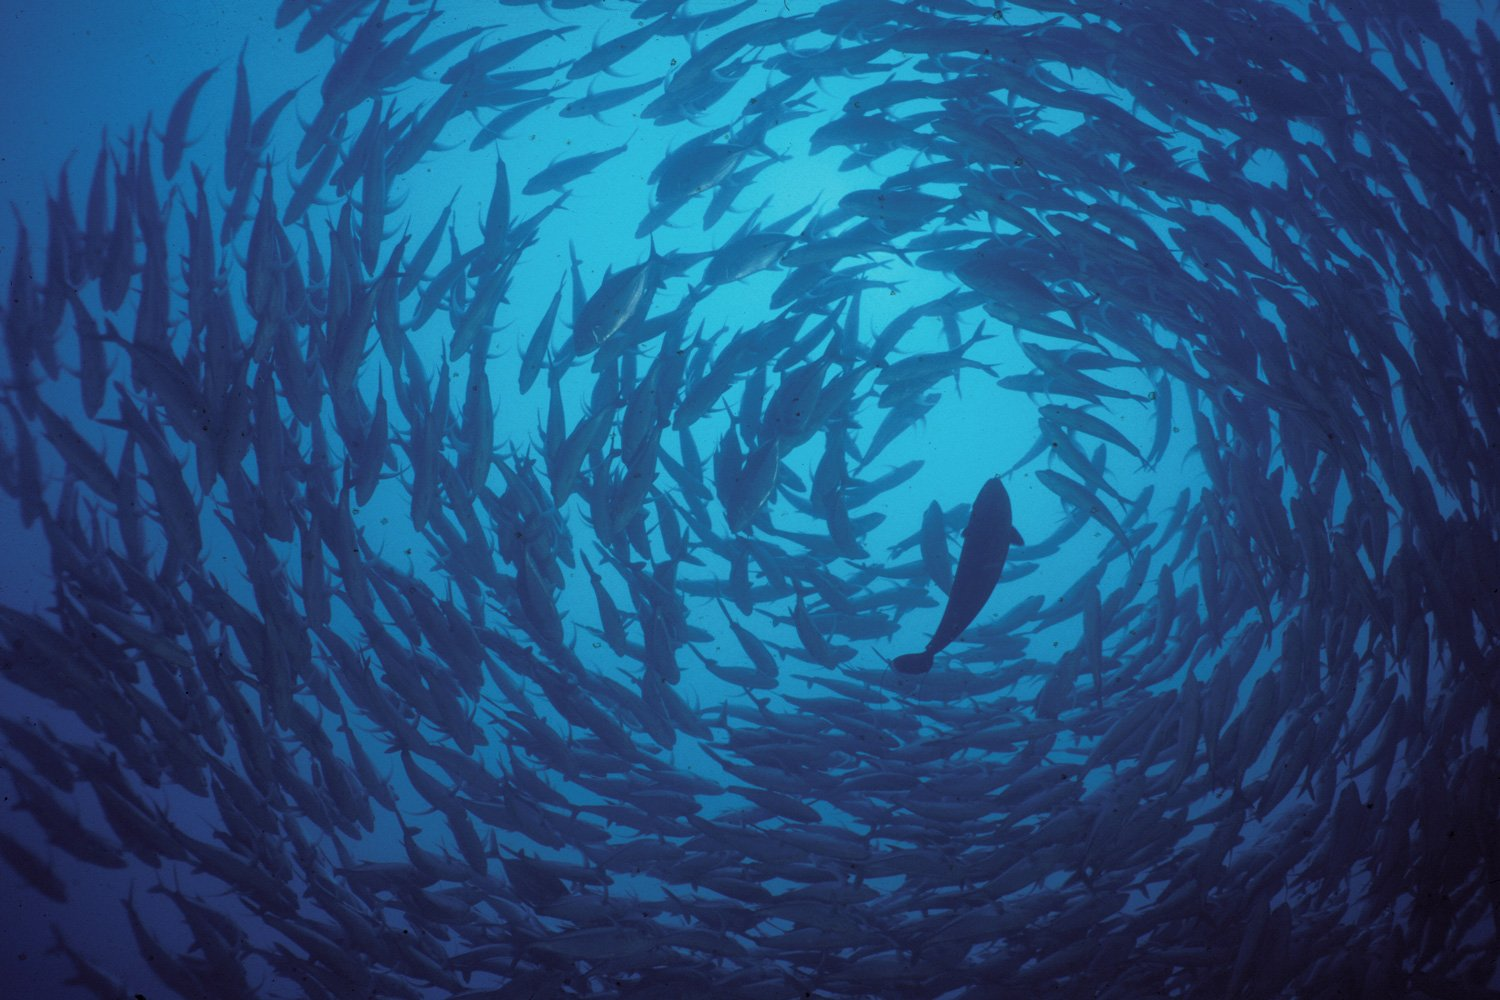 Witness large schools of fish